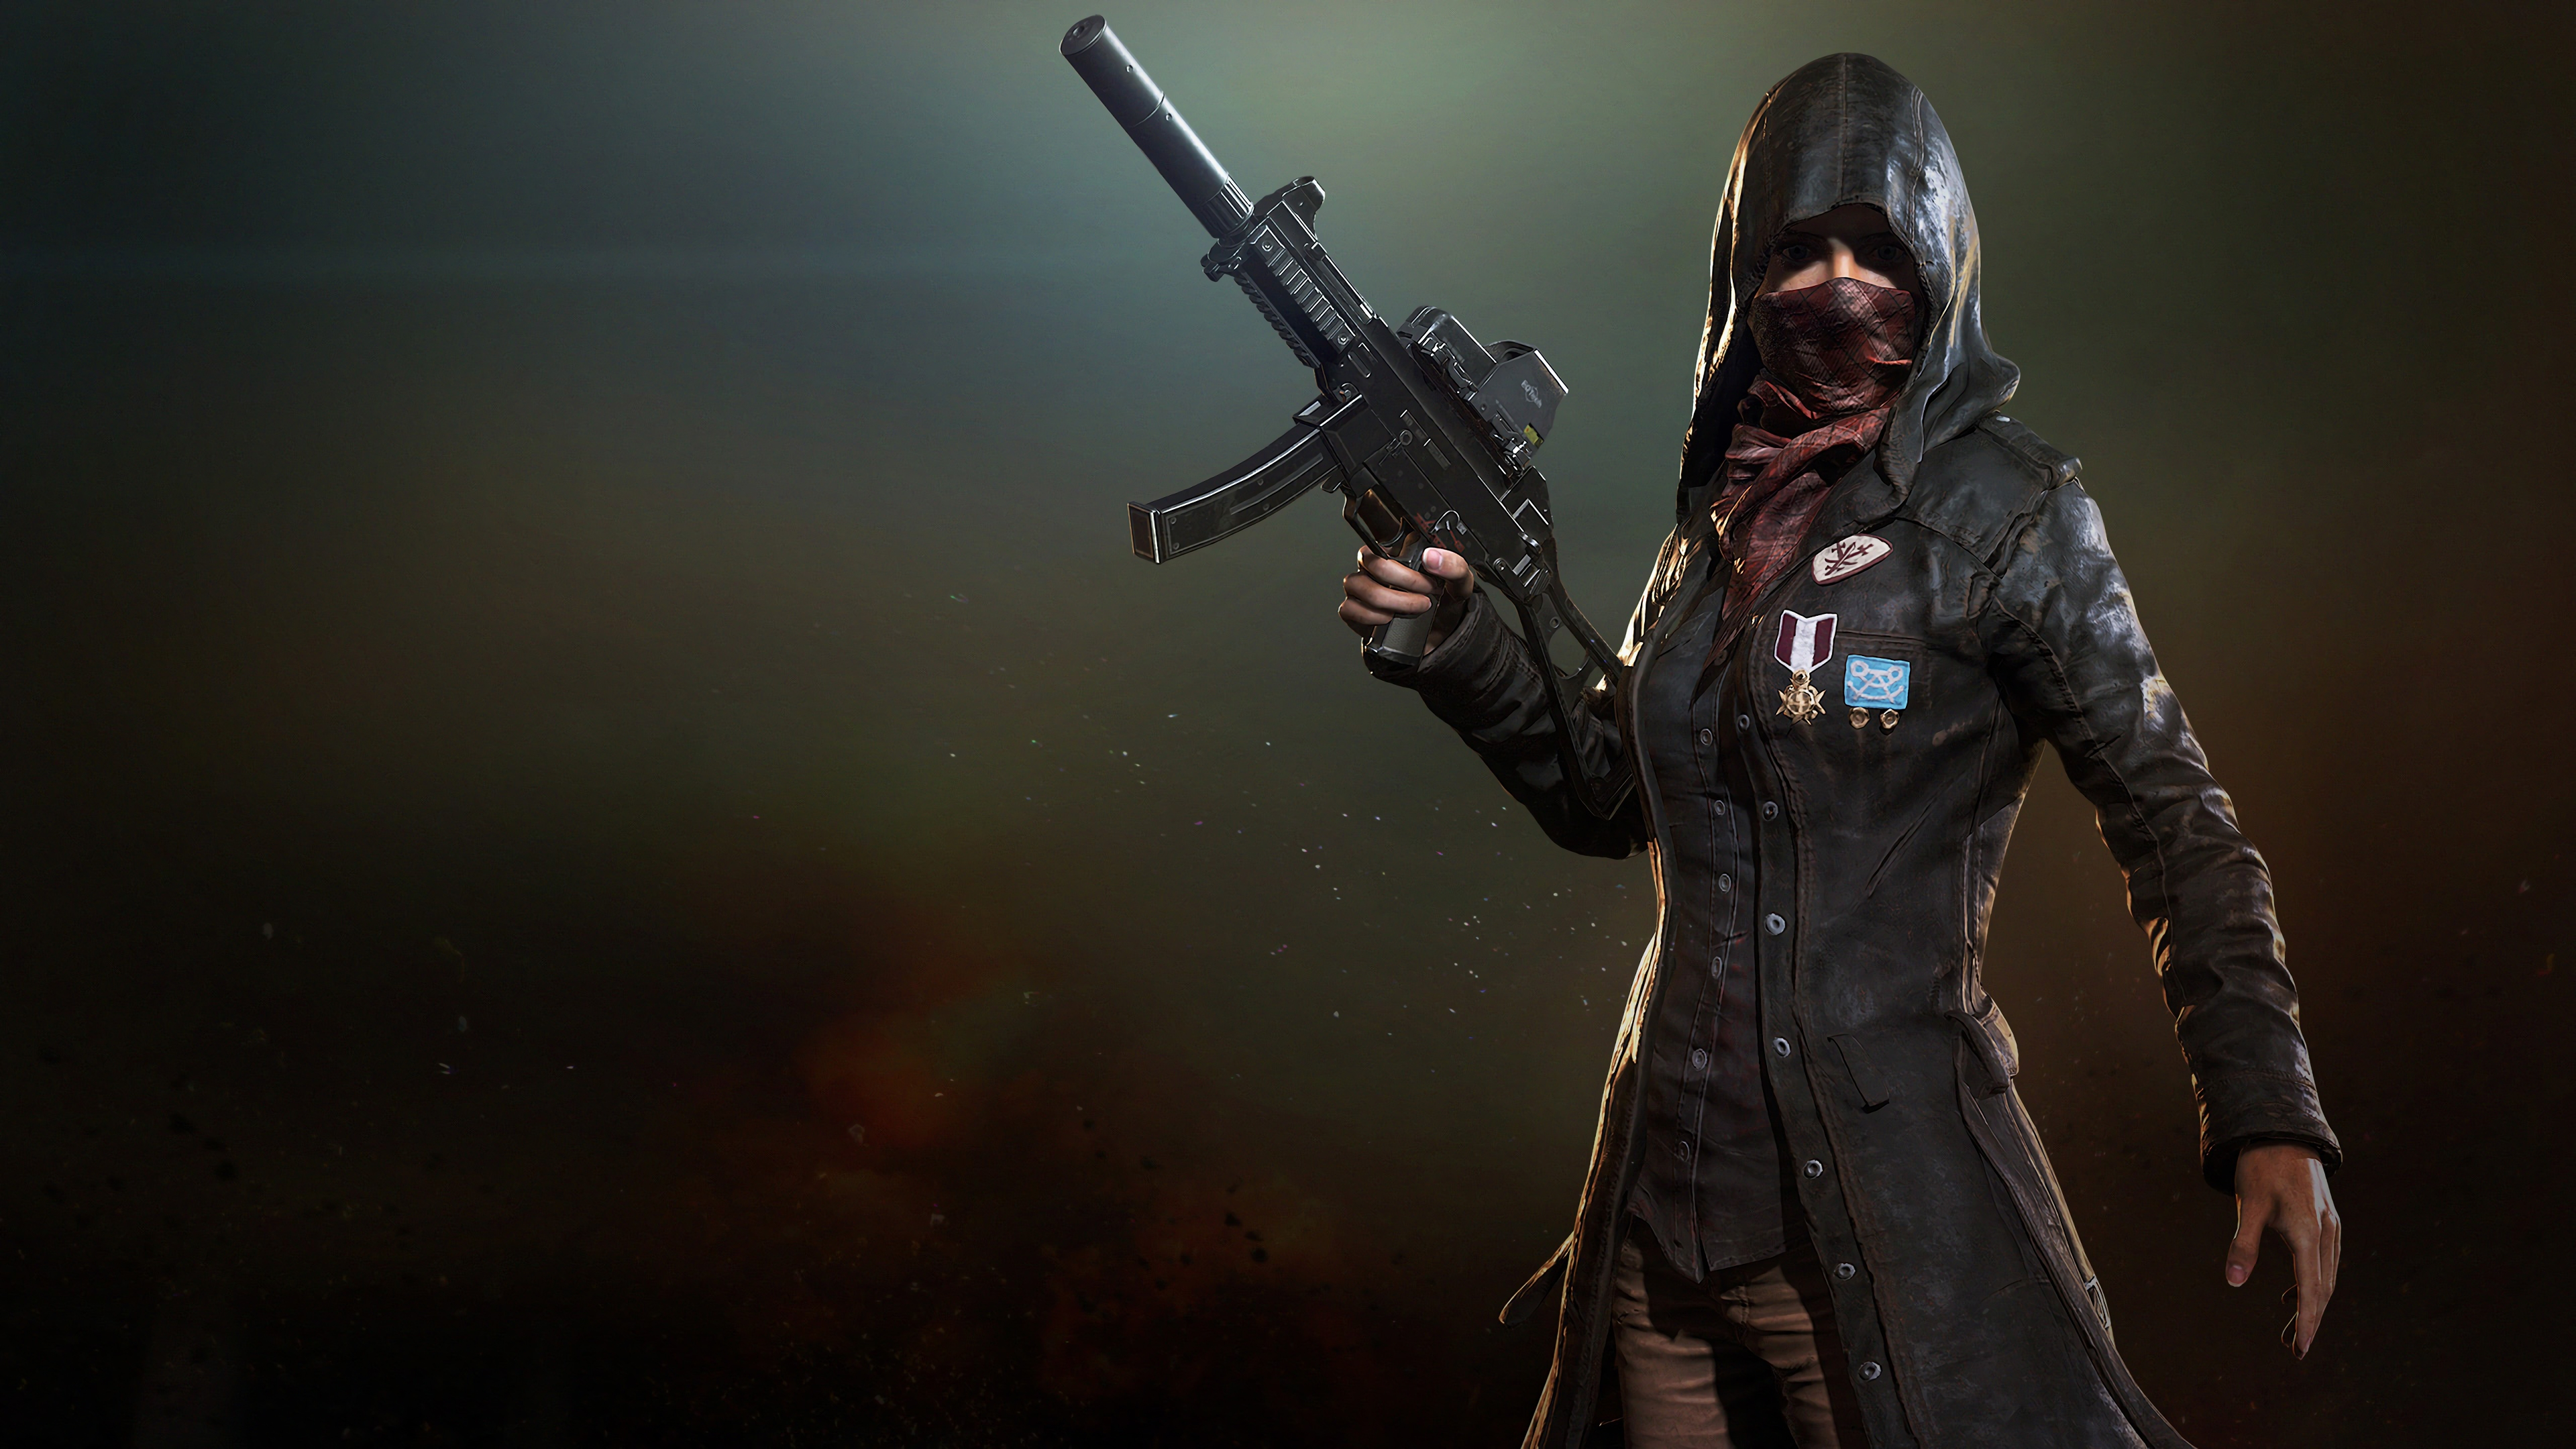 1366x768 Pubg Trenchcoat Girl 4k 1366x768 Resolution HD 4k